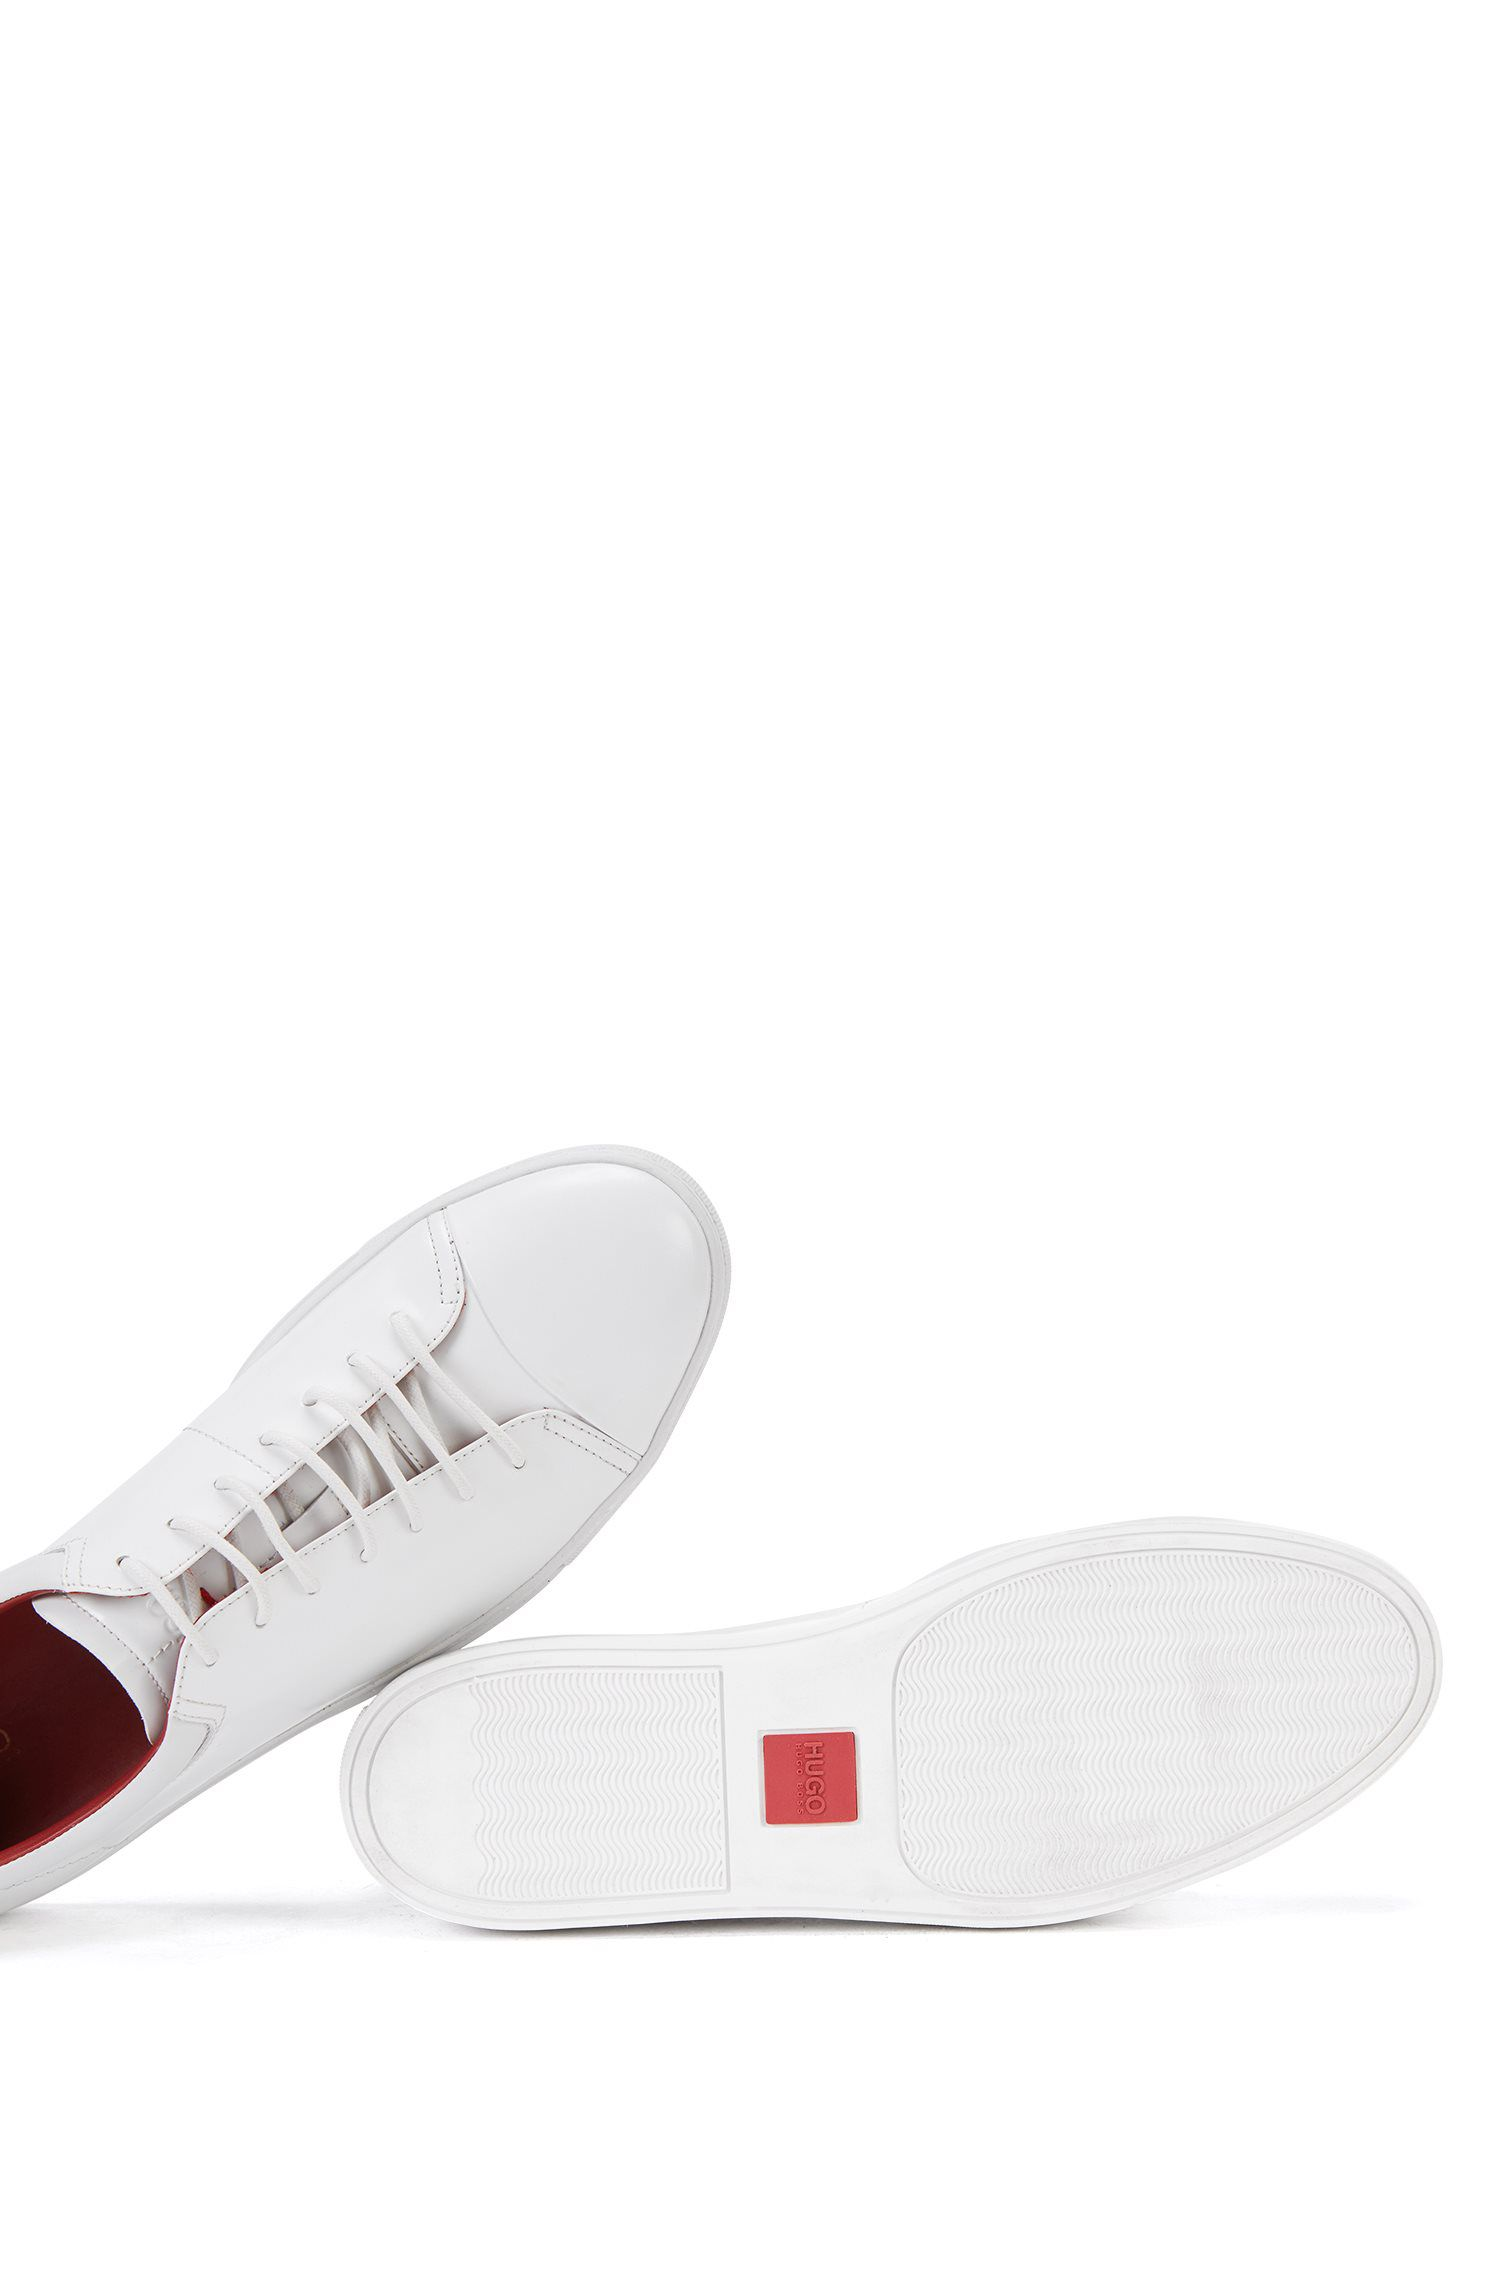 Leather Tennis Shoe | Casual Fut Tenn Boct, White